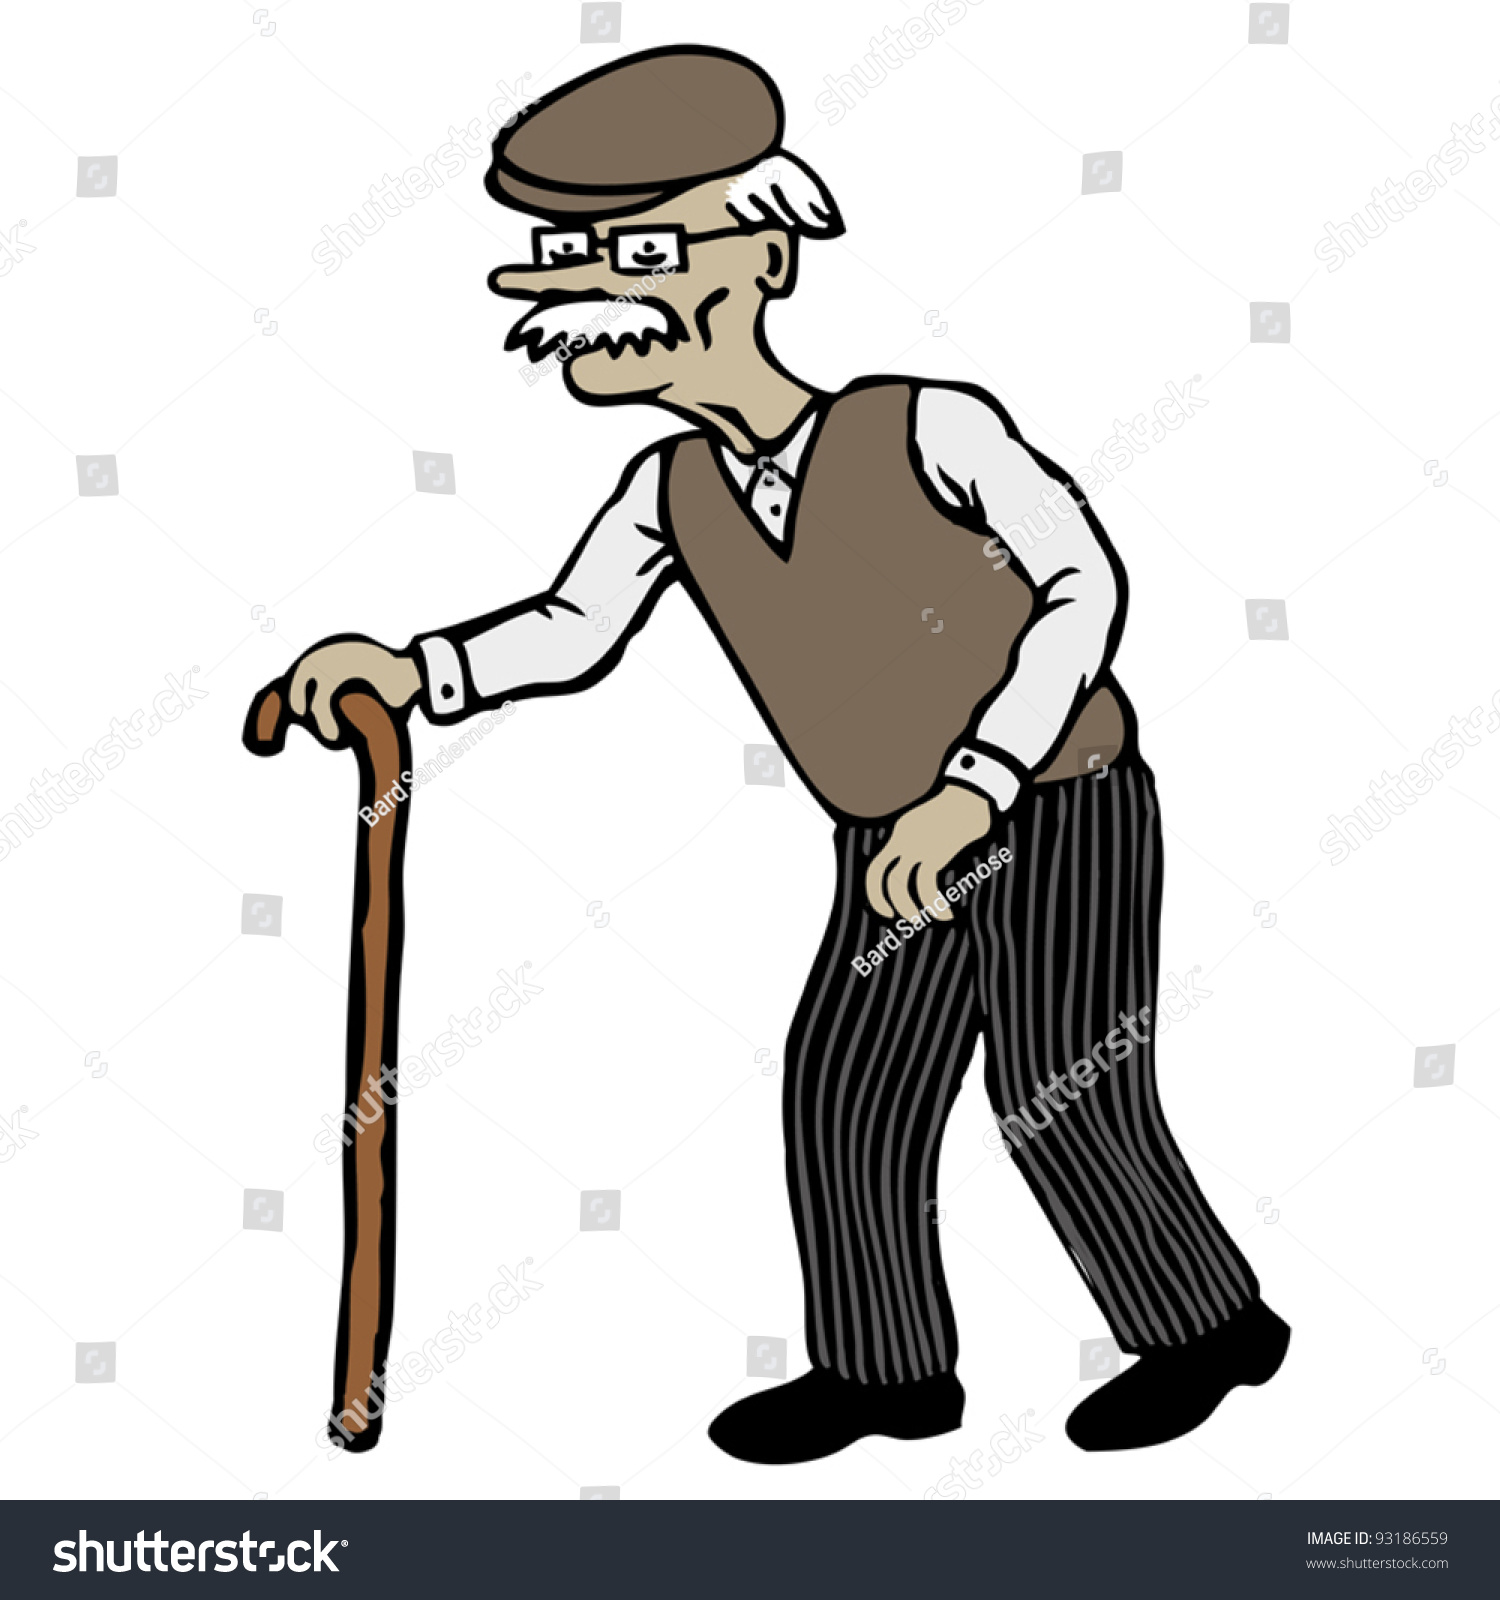 Cartoon Characters Old Man : Old man stock vector shutterstock